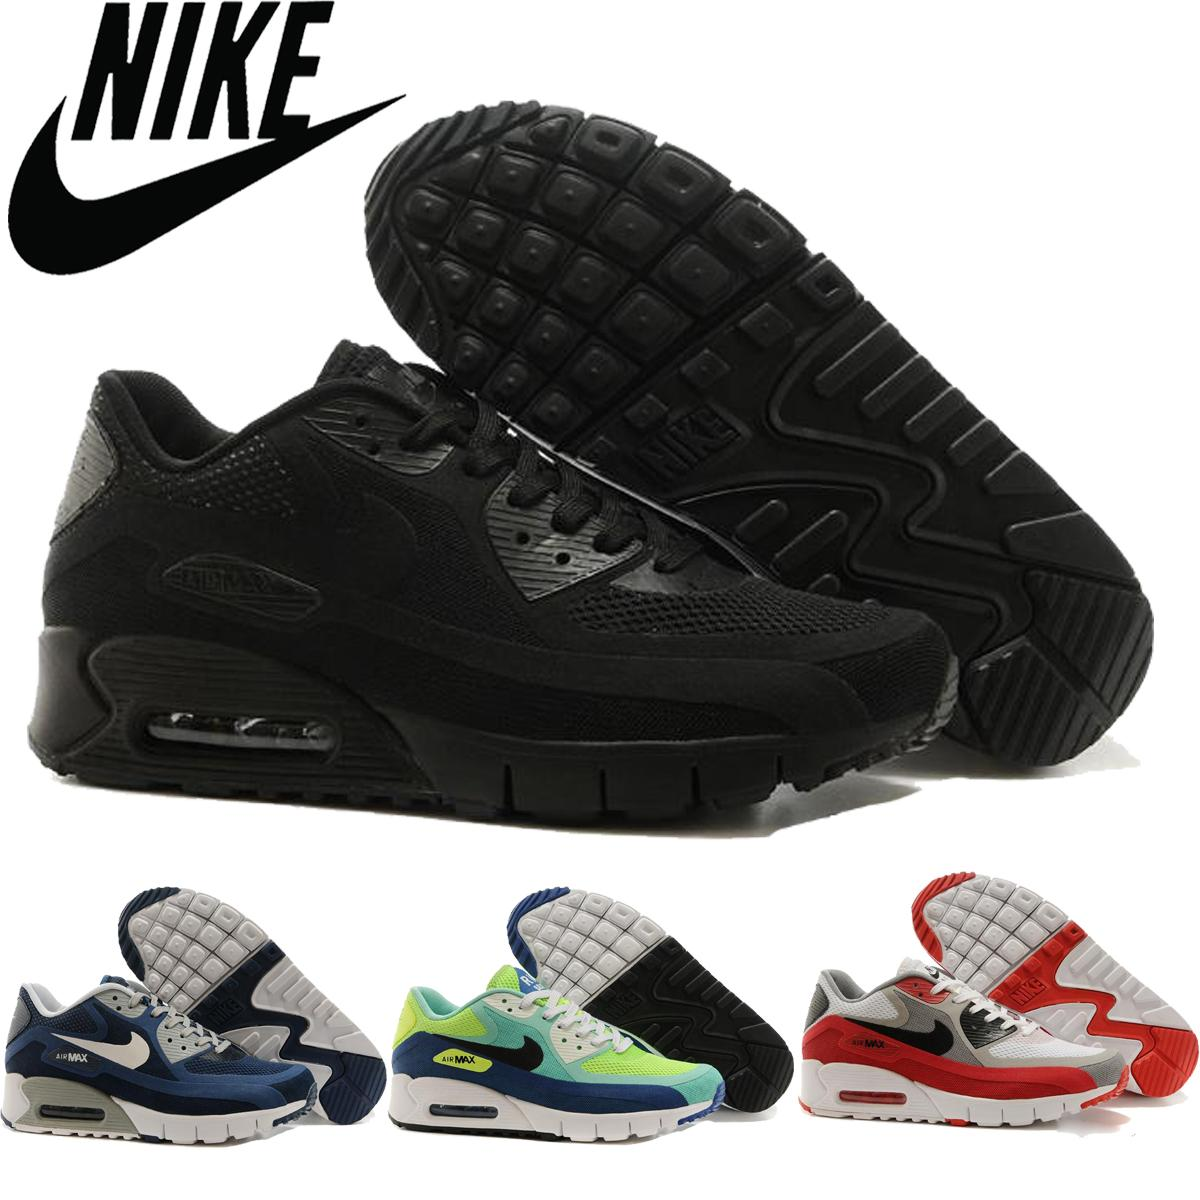 buy cheap 05d21 4d913 Nike Air Max 90 Br All Black Men Running Shoes Cheap Outdoor Athletic Shoes  Breathable Black